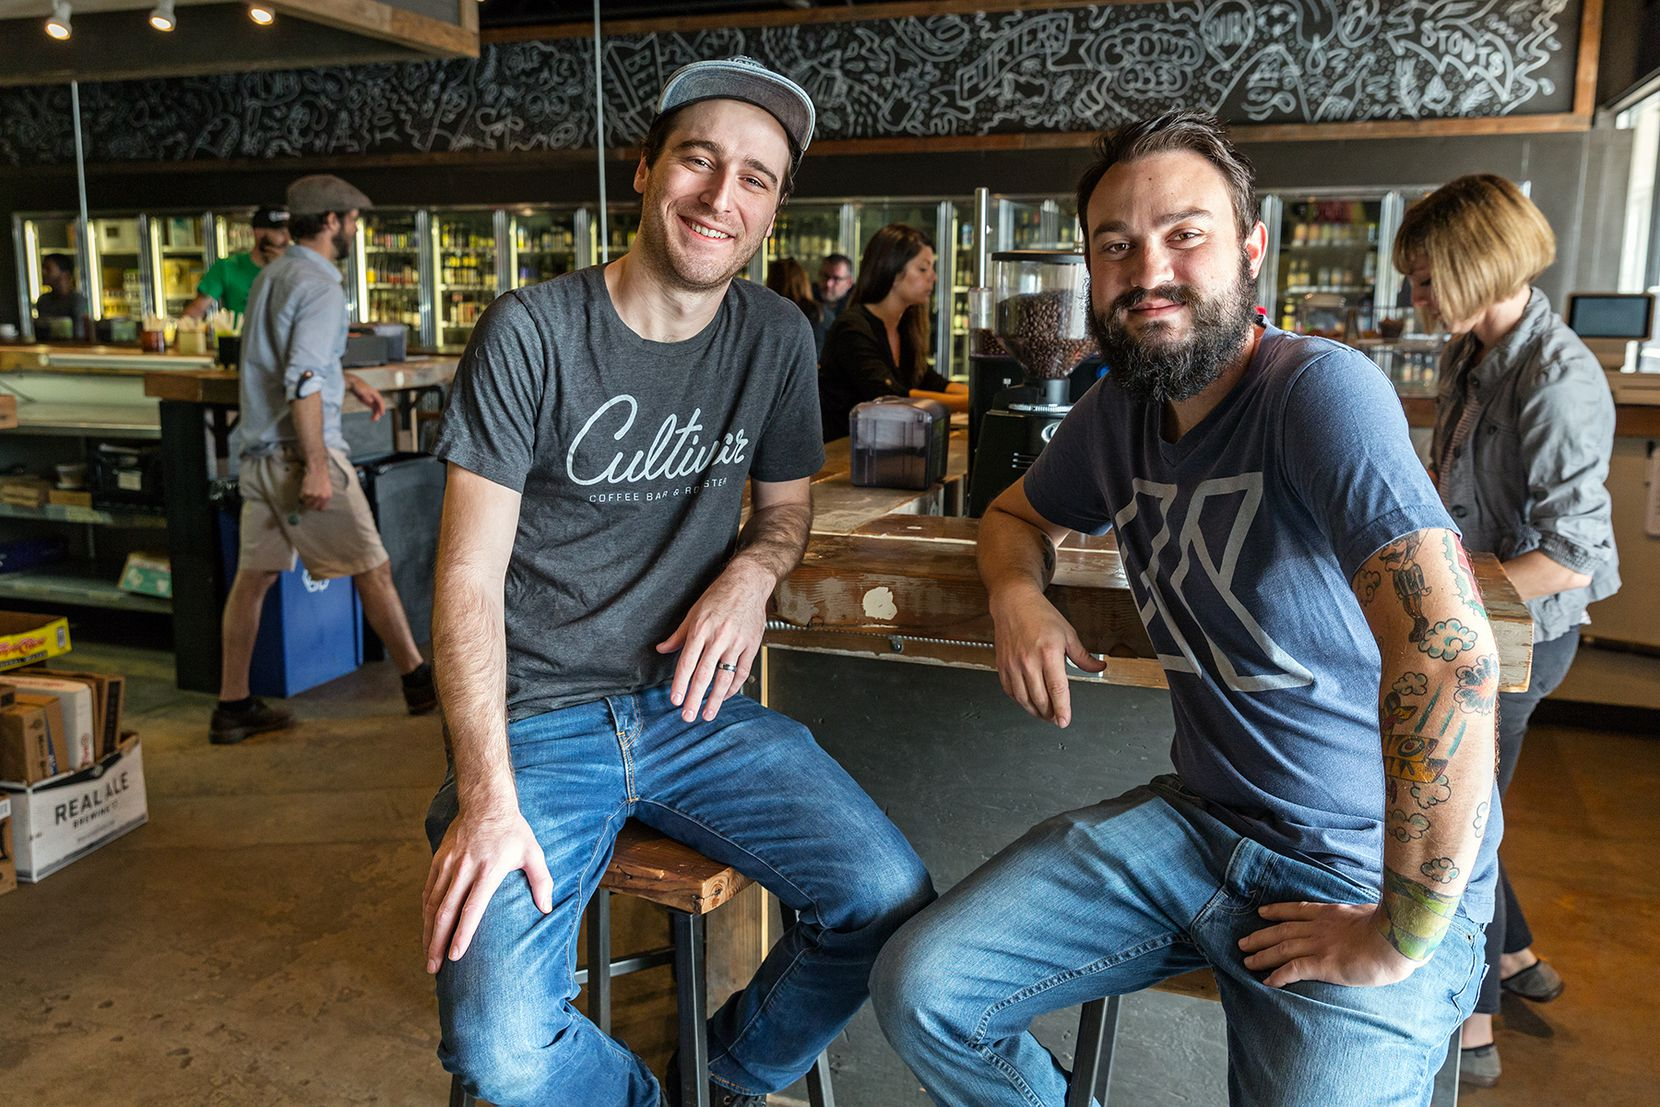 Nathan Shelton (left), 28, and Jonathan Meadows (right), 27, co-founders of Cultivar Coffee Bar and Roaster